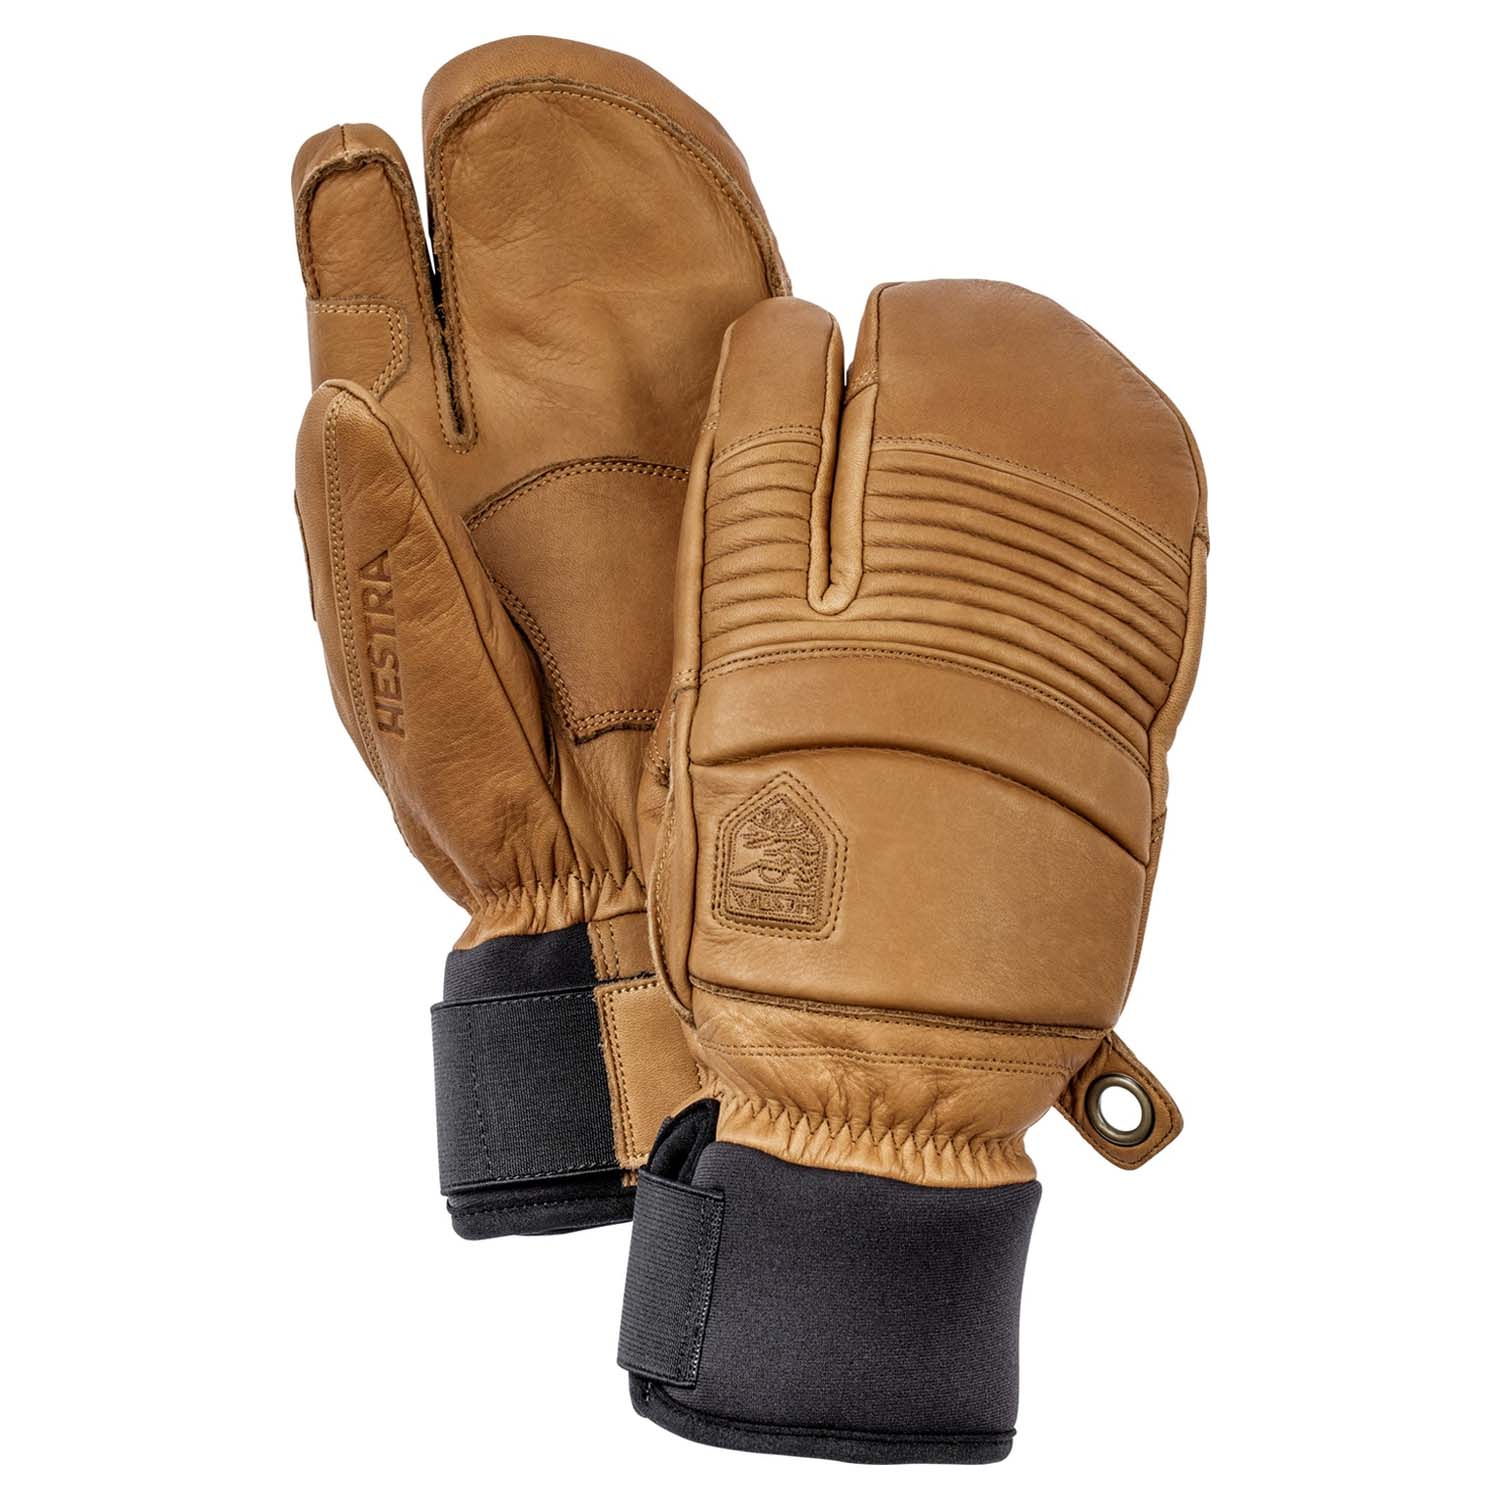 Hestra Leather Fall Line 3-Finger Glove Tan 2020